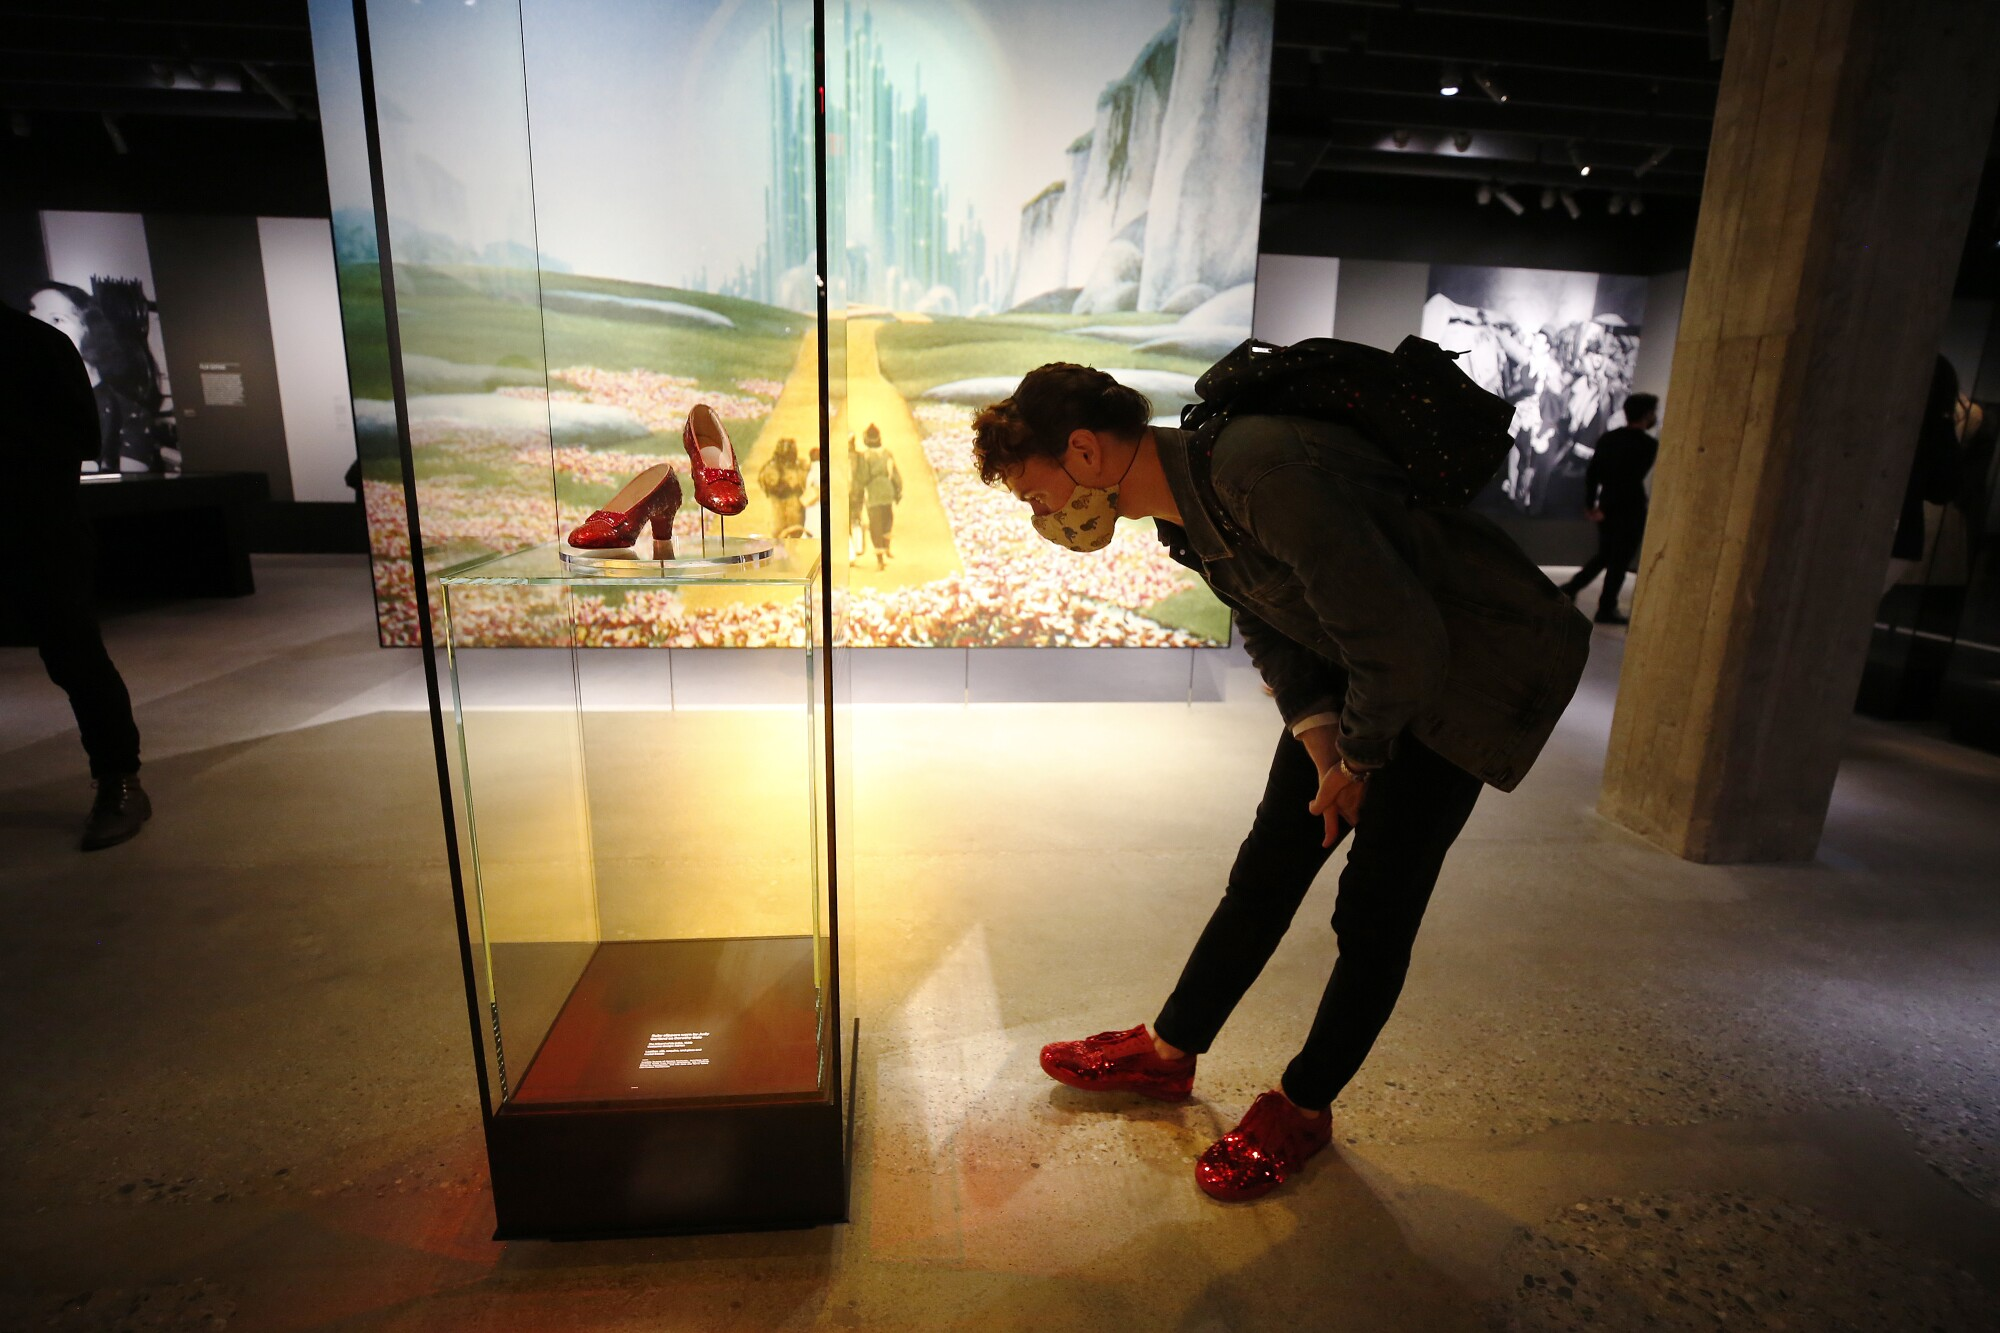 """A person bends to look at a display case containing Dorothy's ruby slippers from """"The Wizard of Oz."""""""